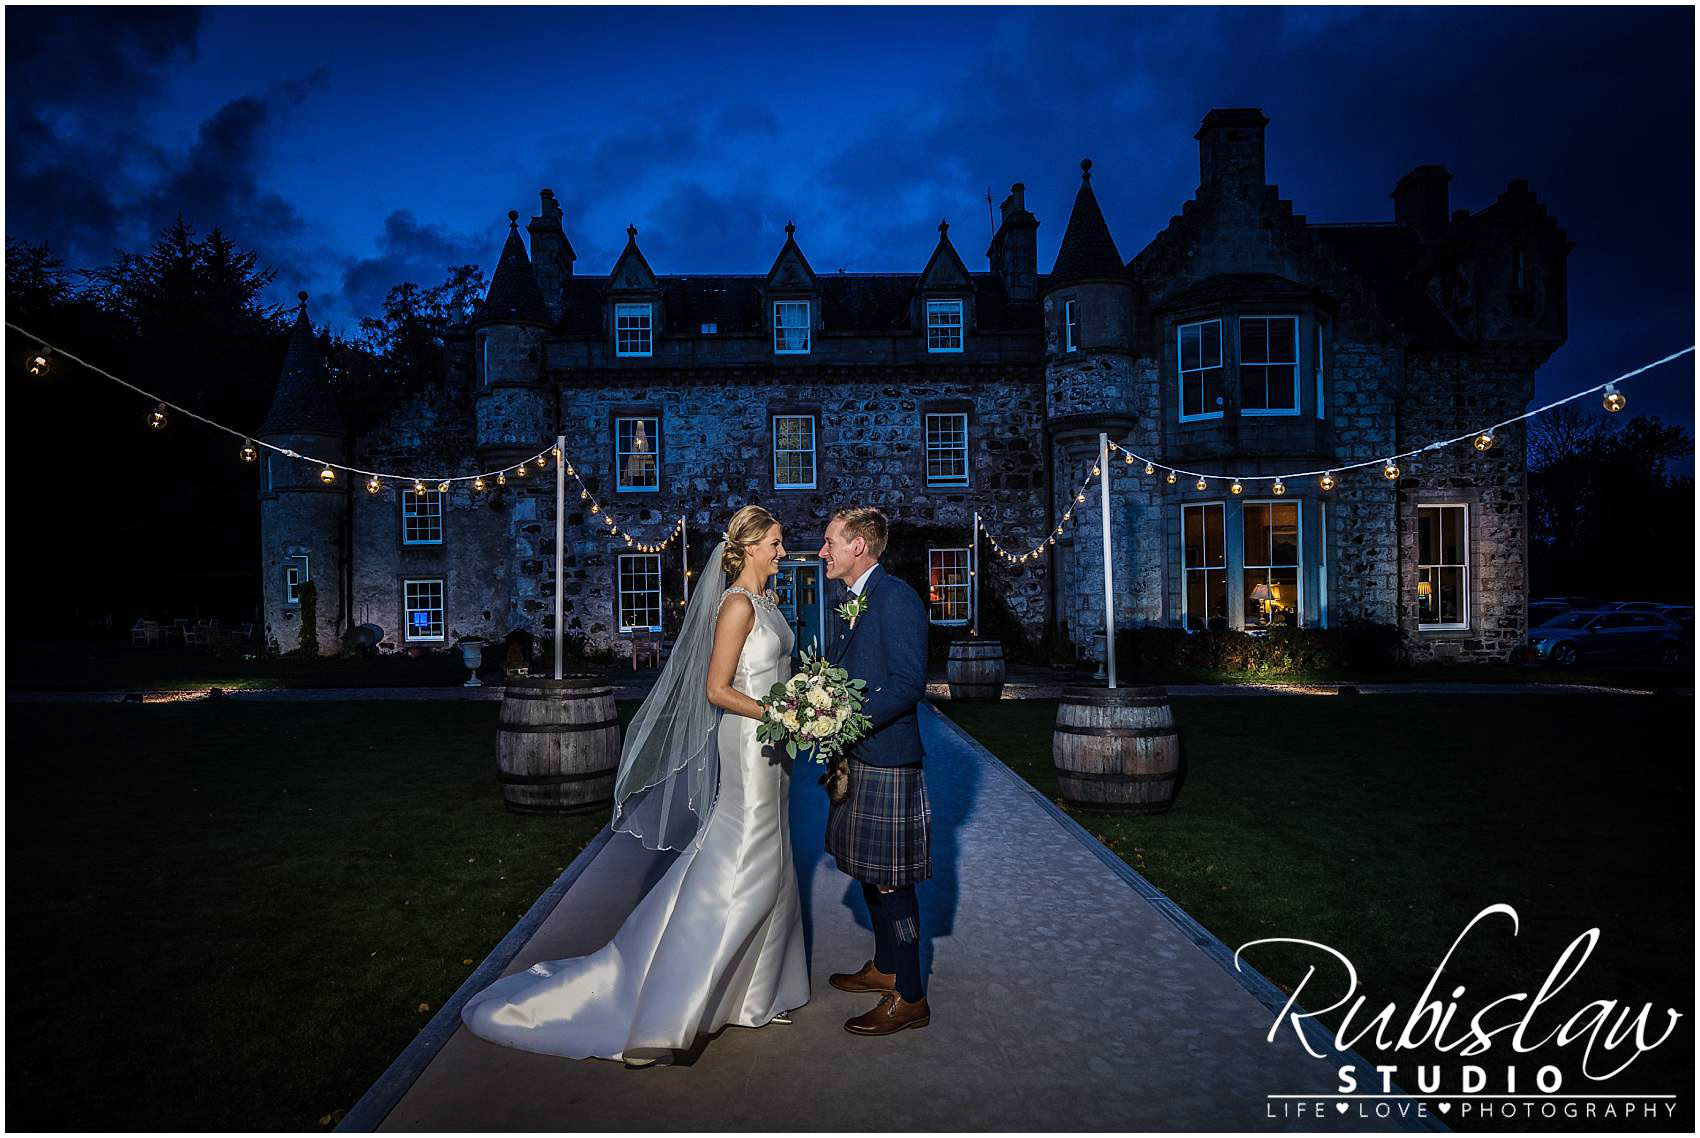 Margaret and James Wedding at Auchterless Church and Wardhill Castle